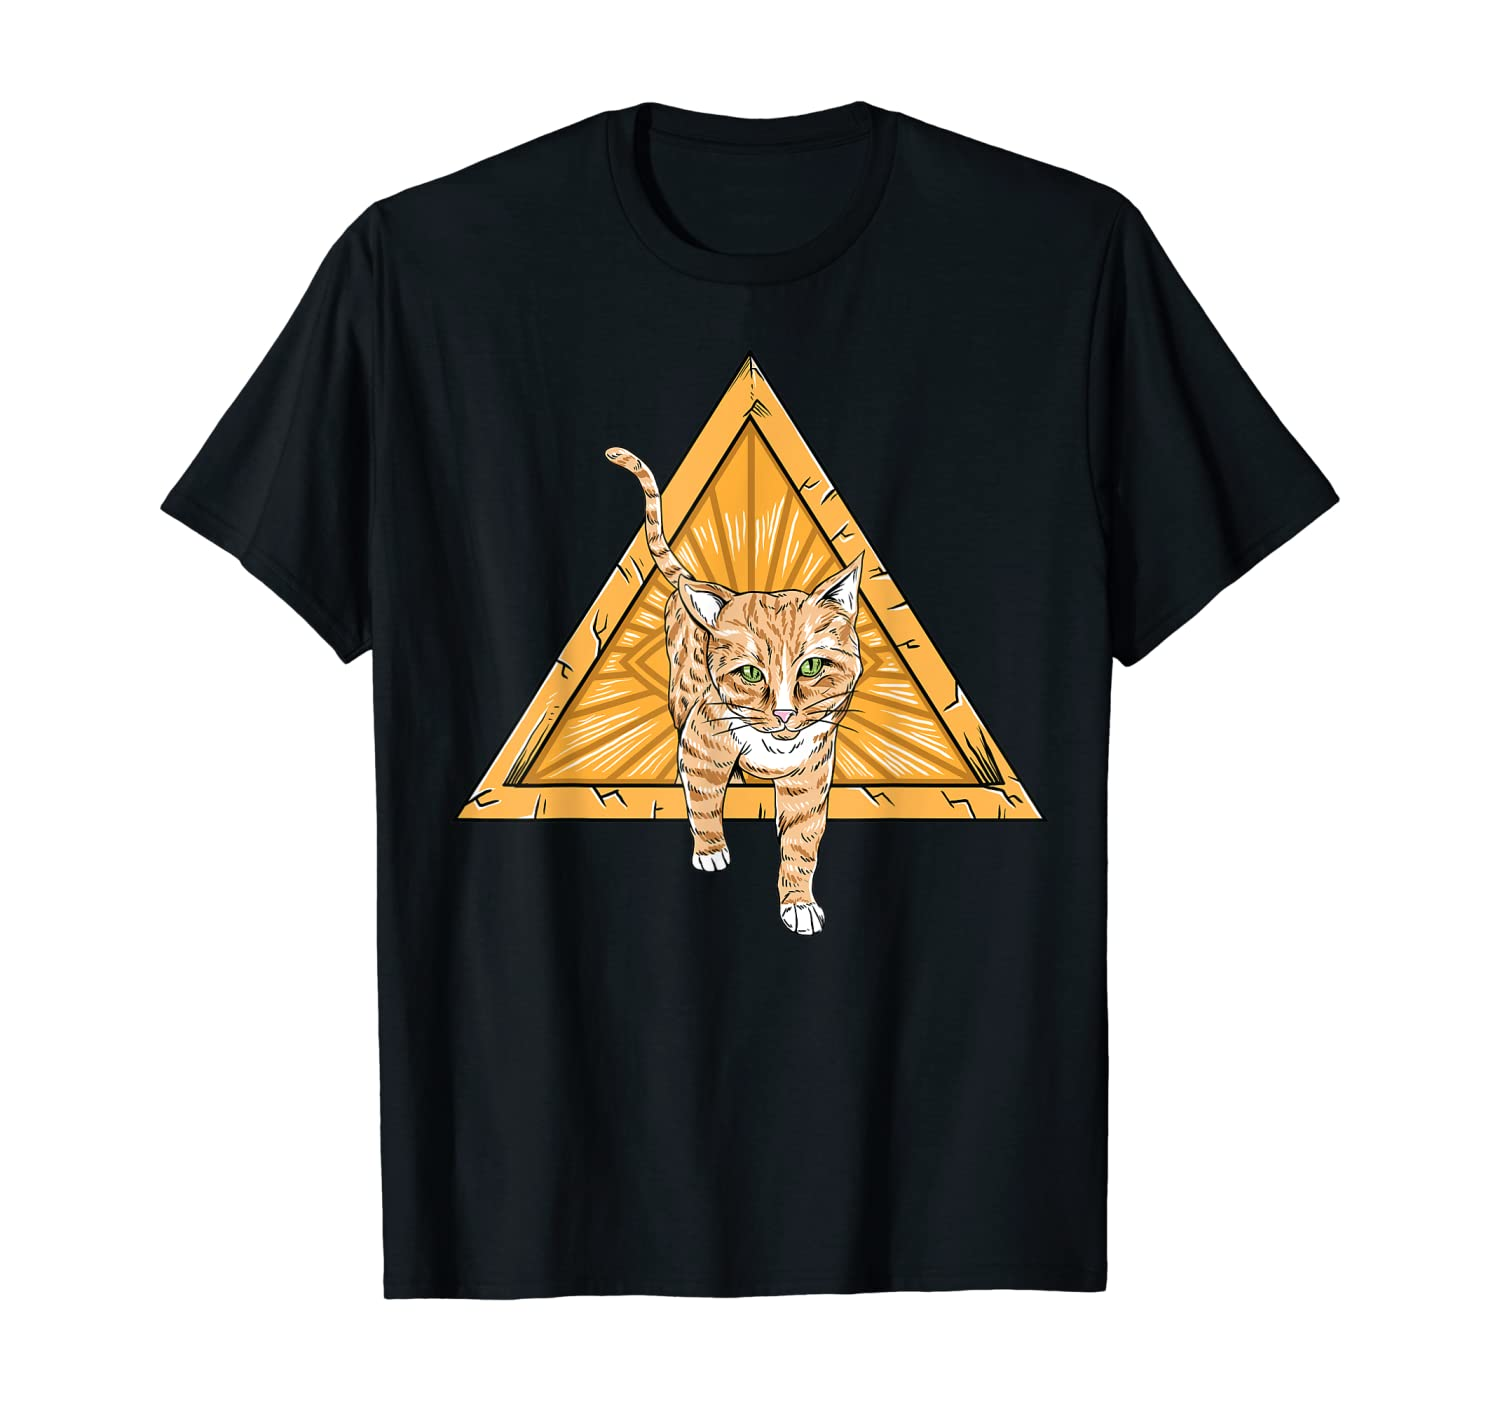 Illuminati Eye of Cheeto The Cat - Shane Dawson T-Shirt